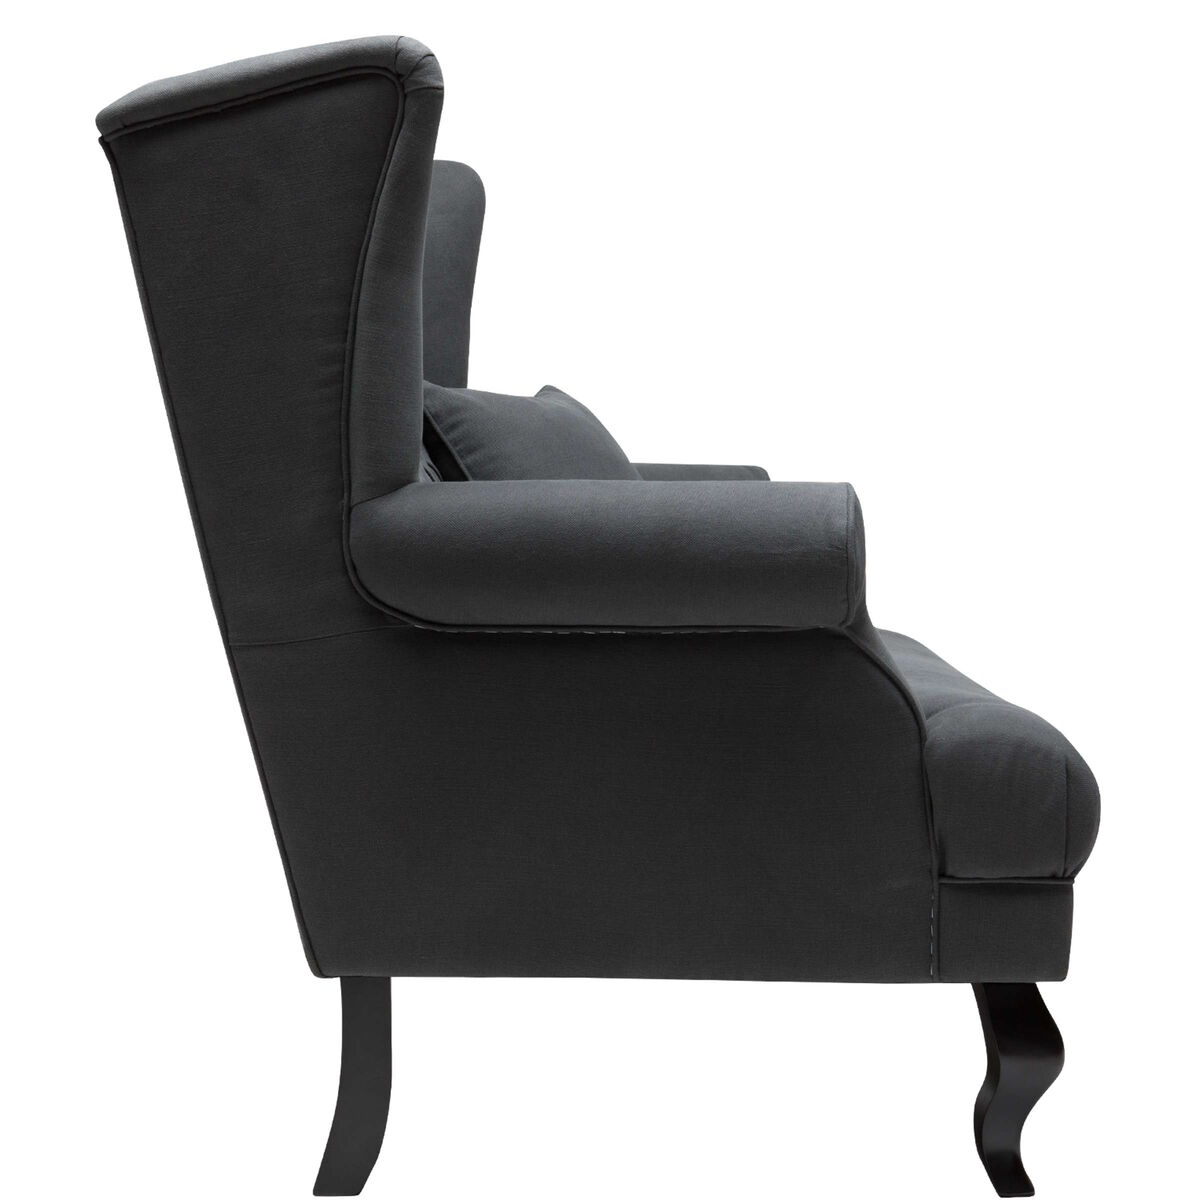 GRAND DUC Sessel Anthrazit